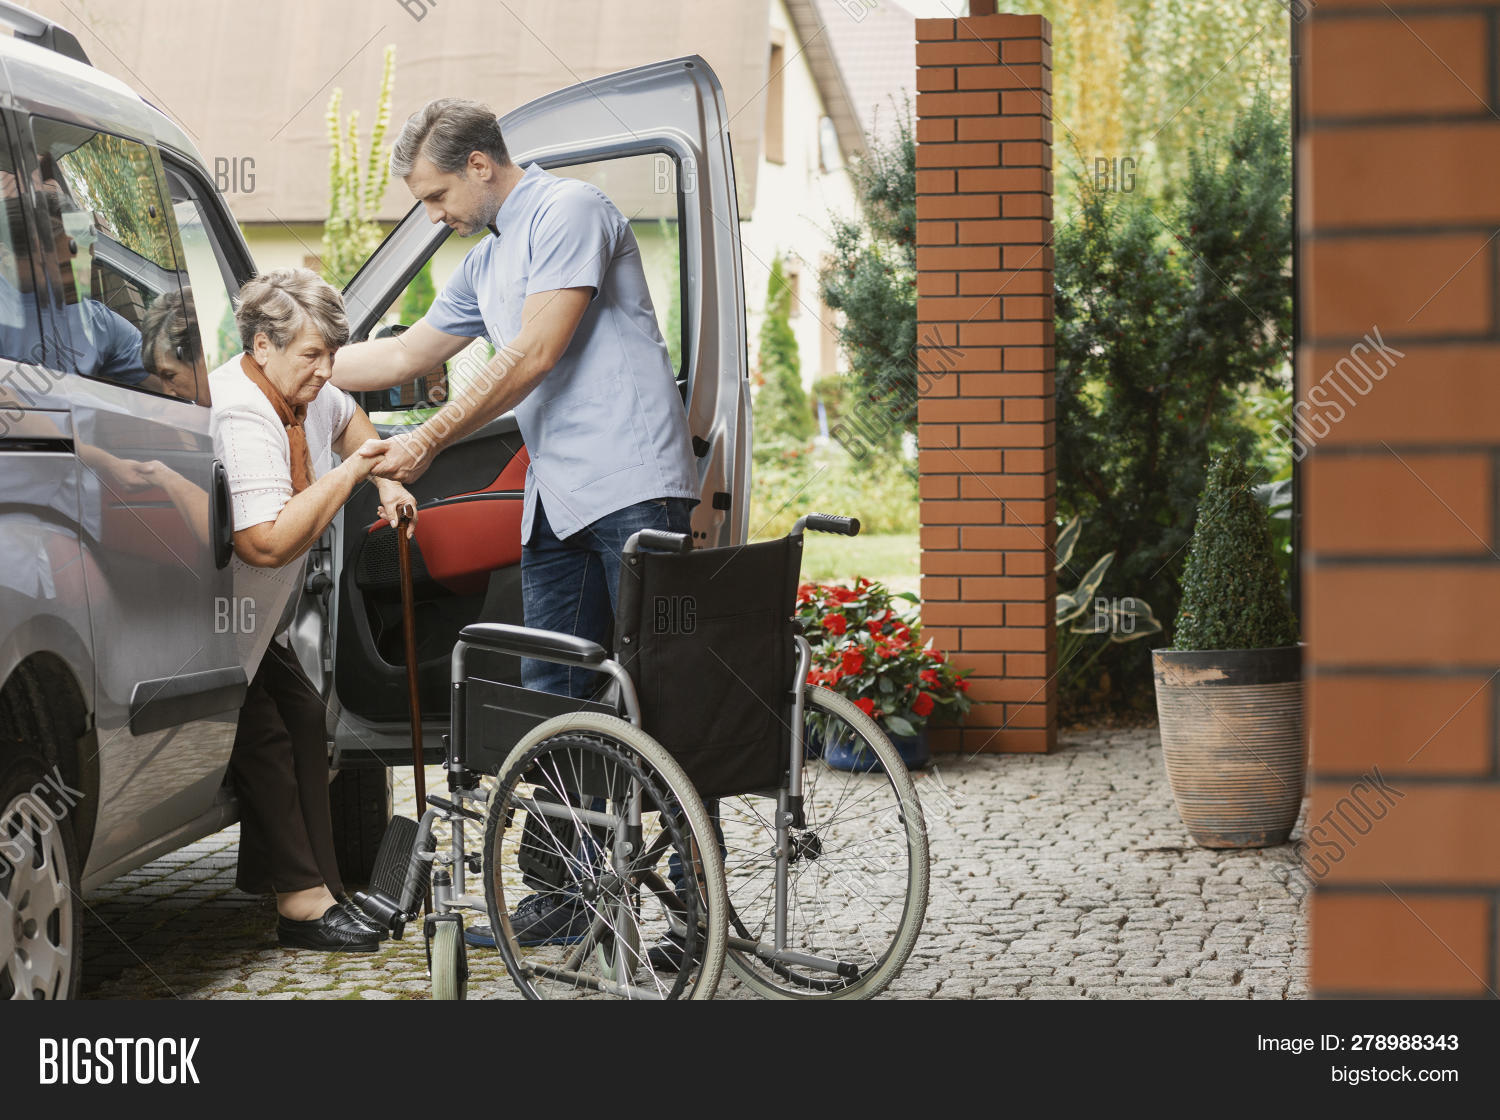 Elderly,Geriatric,Helpful,aging,alzheimer,attack,breath,breathless,breathlessness,car,care,caregiver,chest,facility,fatigue,garden,get,grandmother,grandparent,grey,healthcare,heart,helping,home,lady,malaise,male,man,nurse,nursing,old,outdoor,pain,park,parkinson,patient,pensioner,problem,professional,retirement,senior,son,stroke,support,to,volunteer,weakness,wheelchair,woman,worker